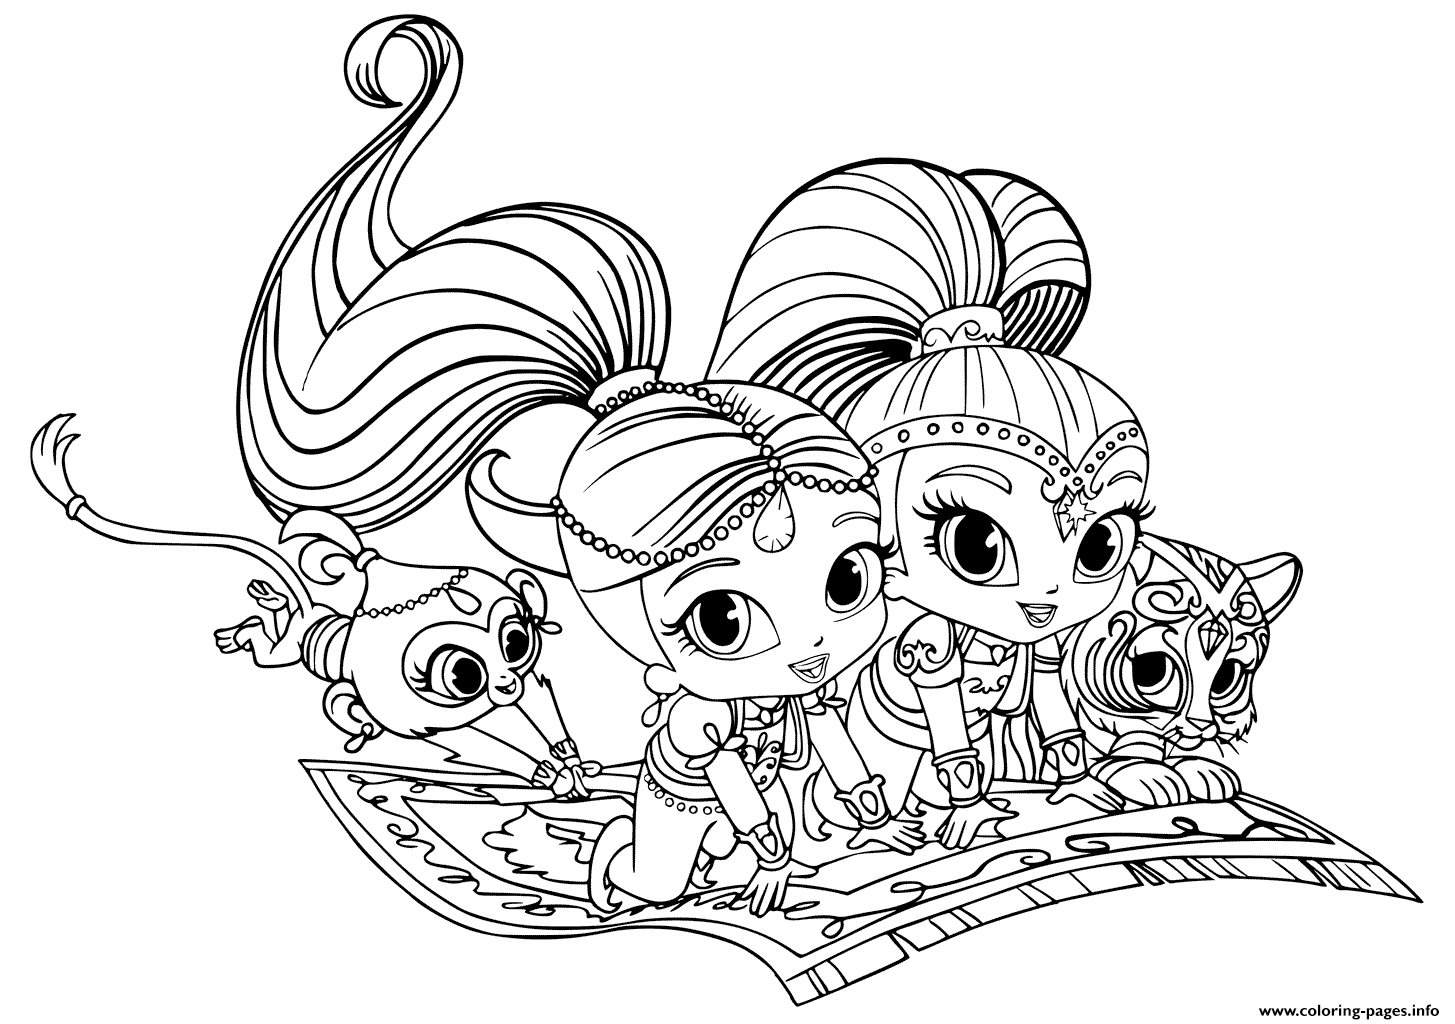 coloring pages shimmer and shine Print Shimmer and Shine Pets coloring pages | Printable coloring pages coloring pages shimmer and shine